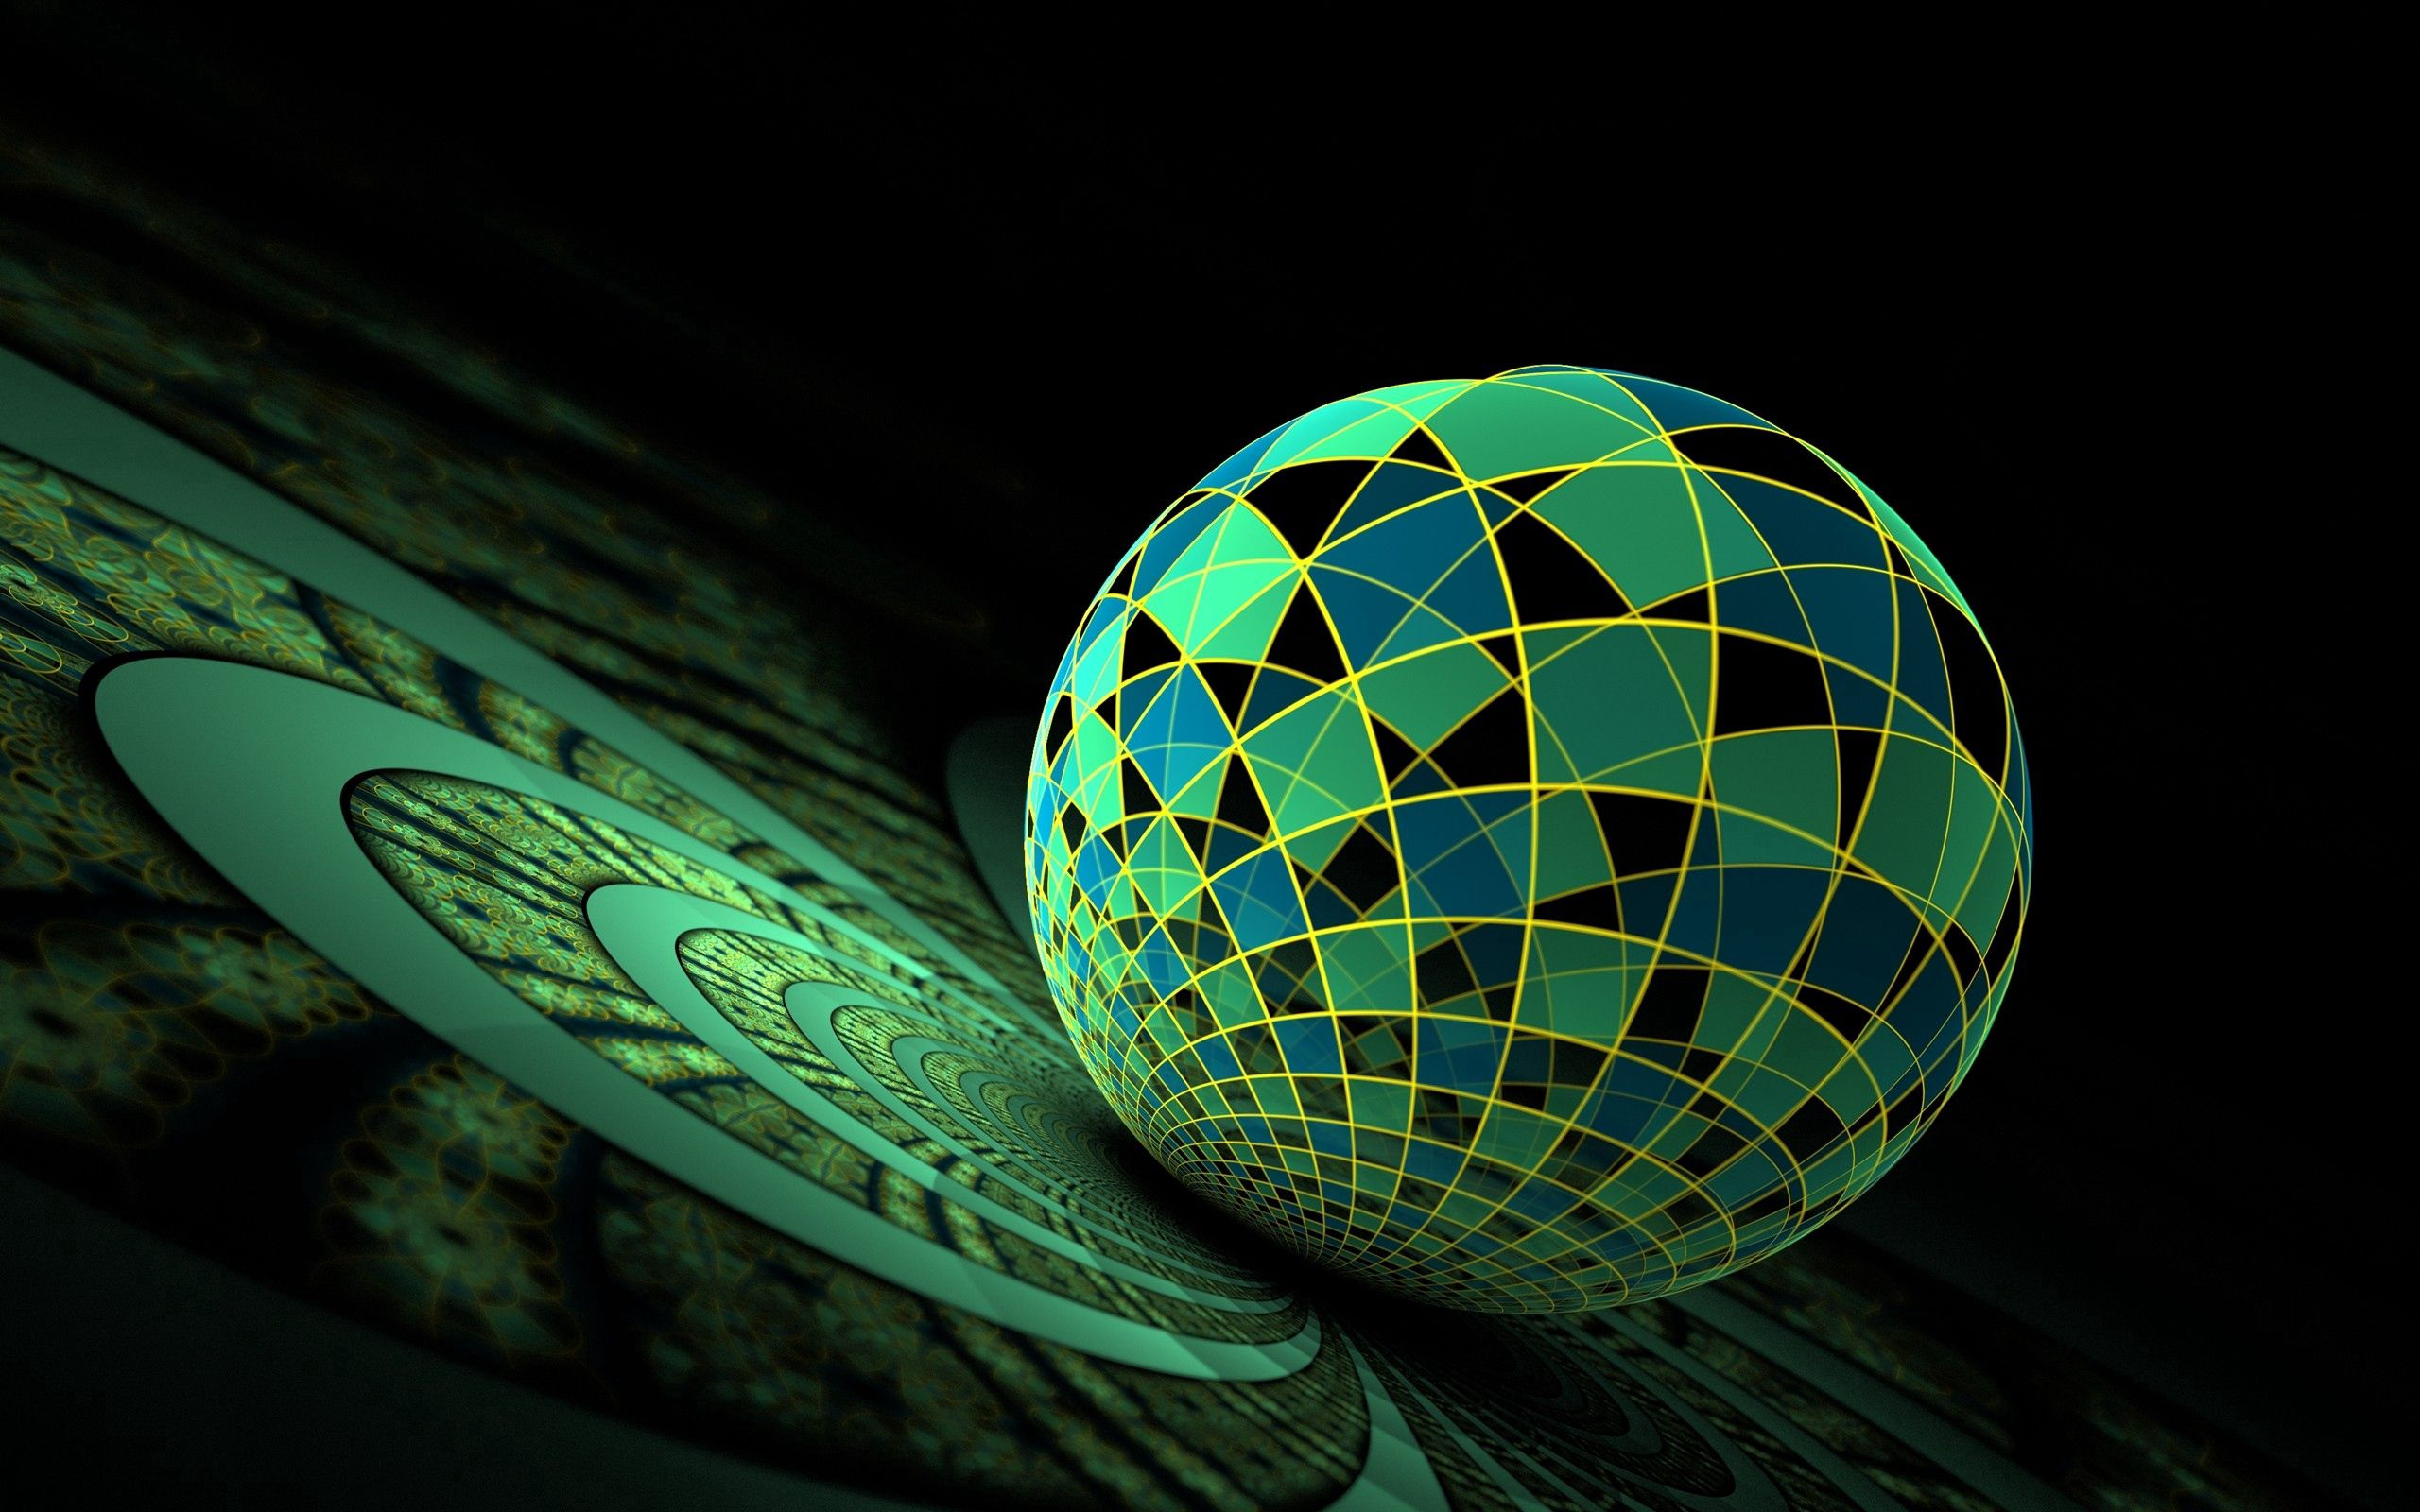 101972 download wallpaper Glass, Abstract, Background, Surface, Ball screensavers and pictures for free